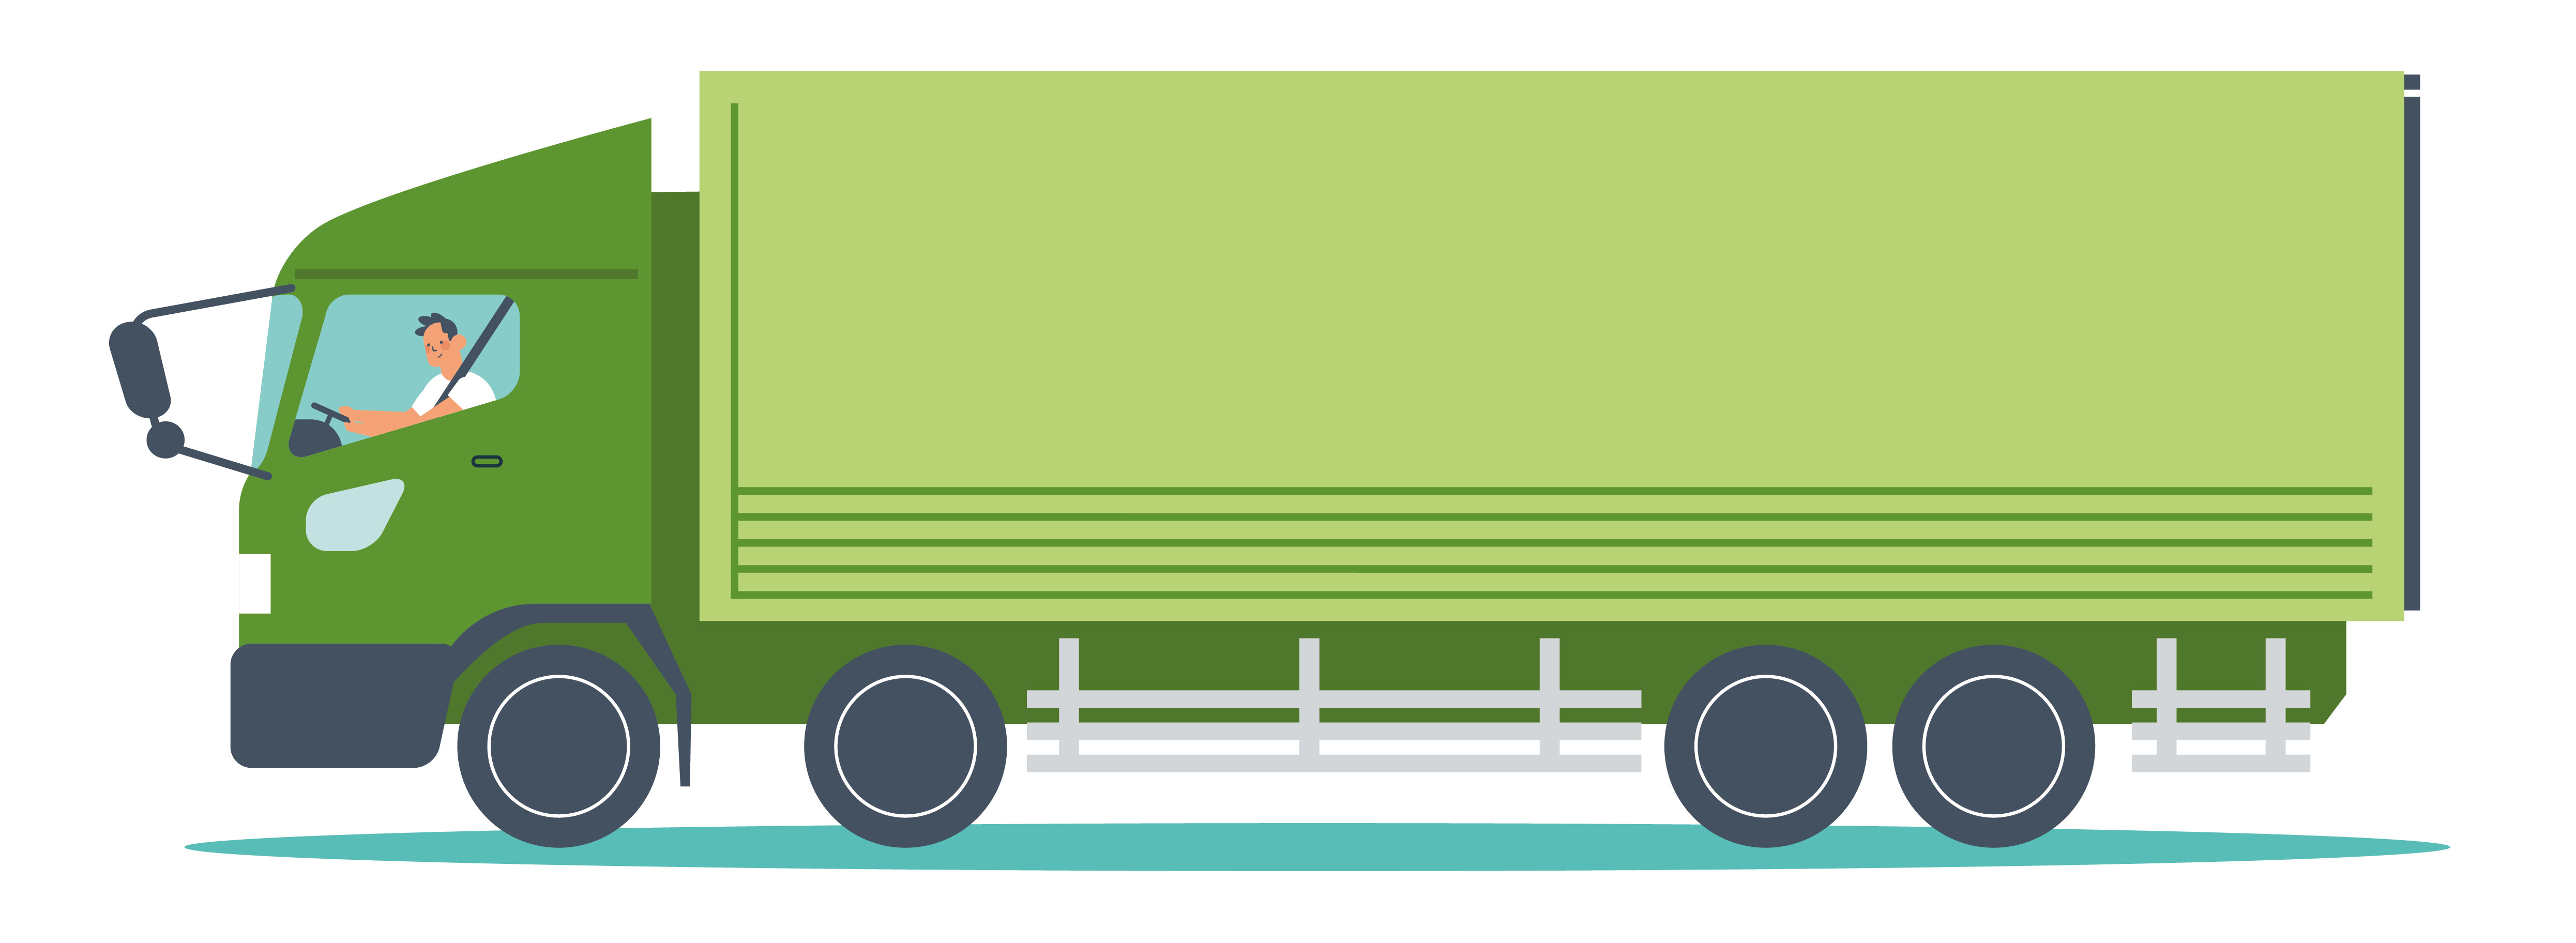 Illustrated graphic of a heavy goods vehicle (HGV)